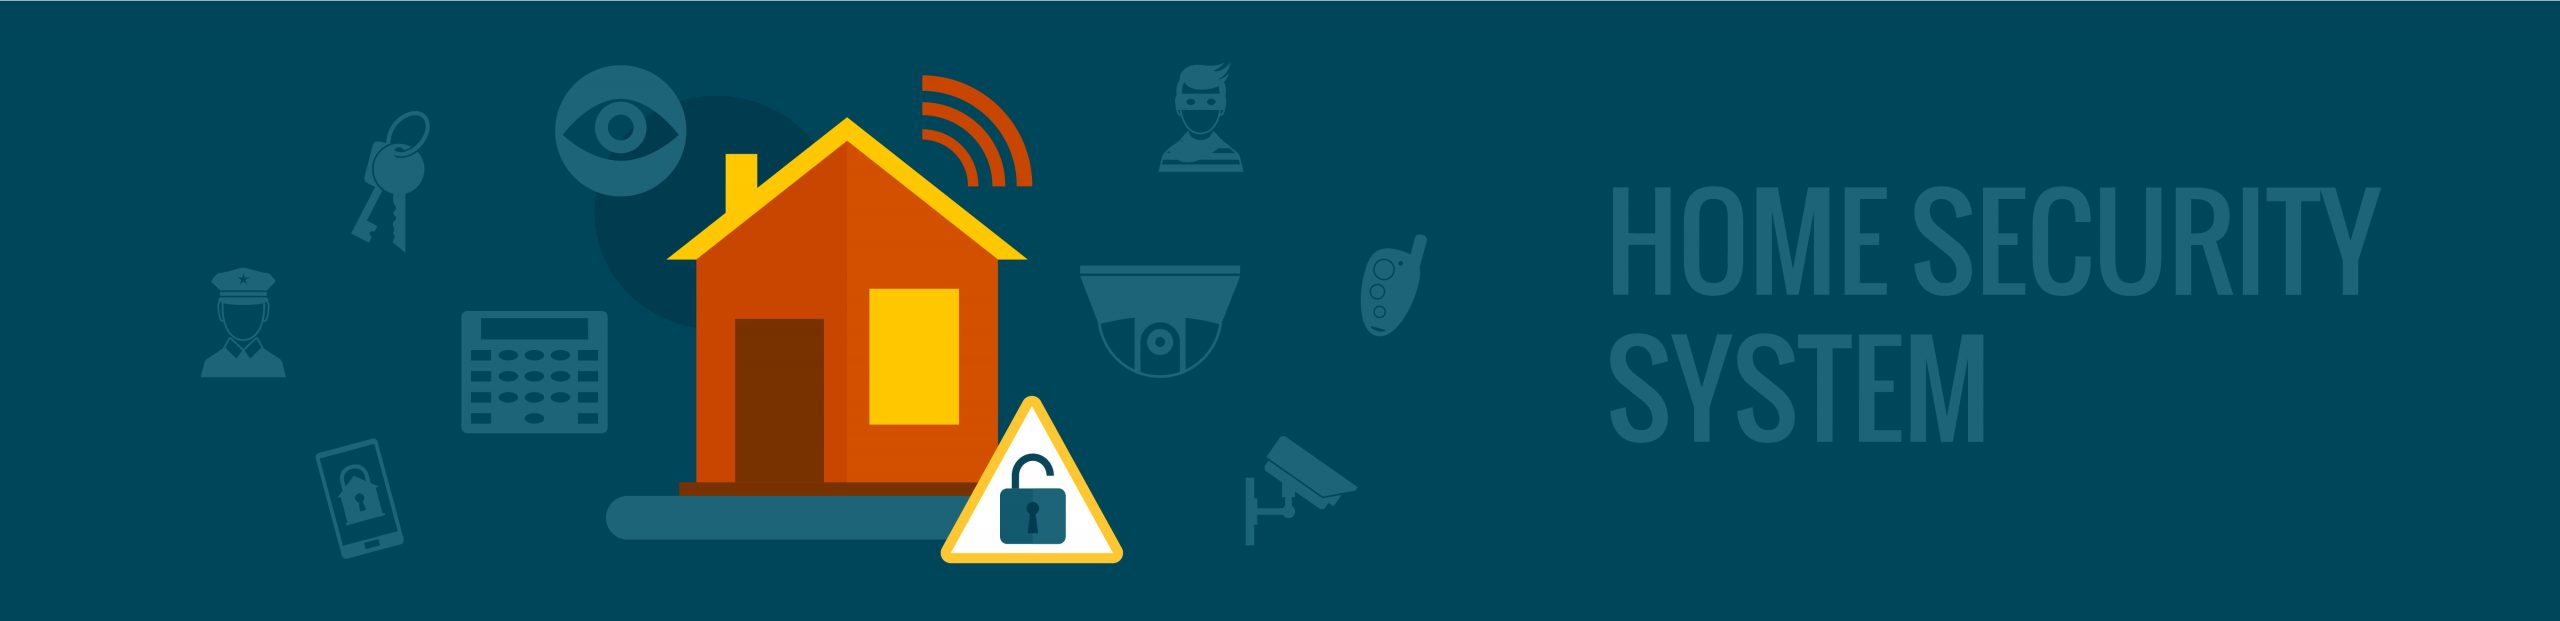 Security Devices_1360x330